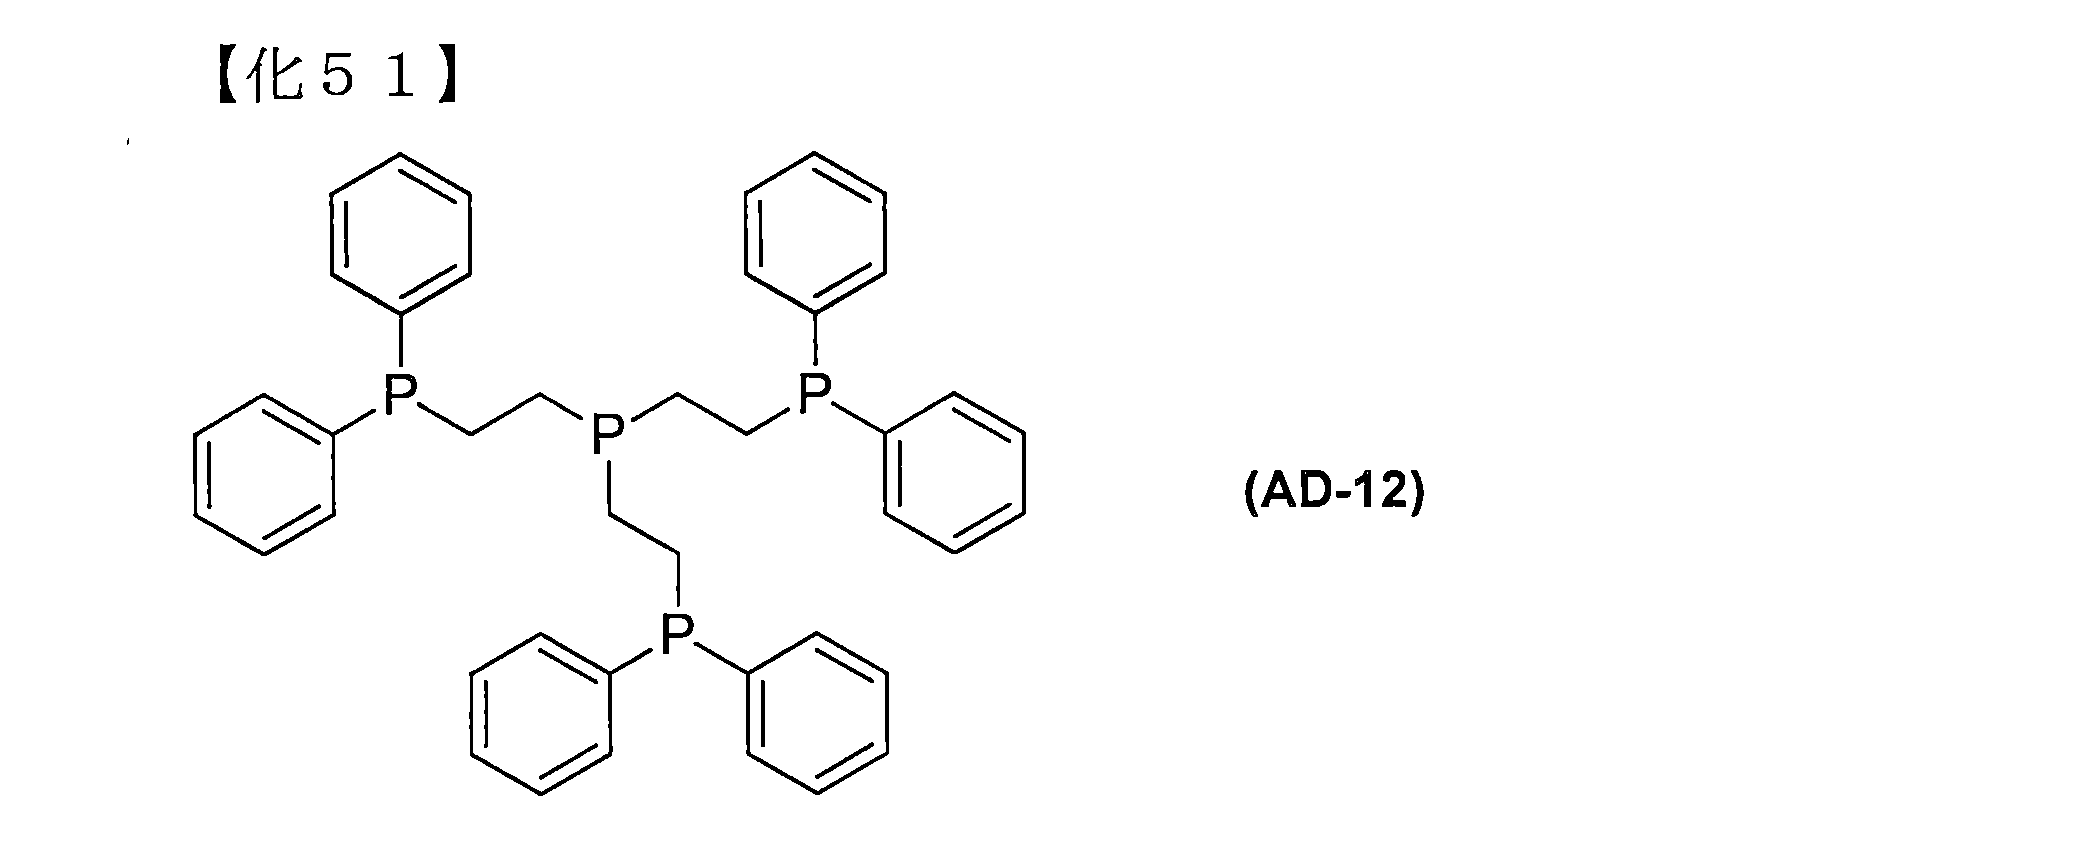 Wo2015156228a1 Polymer Electrolyte Composition And Ar9 Crossover Wiring Diagram Figure Jpoxmldoc01 Appb C000053